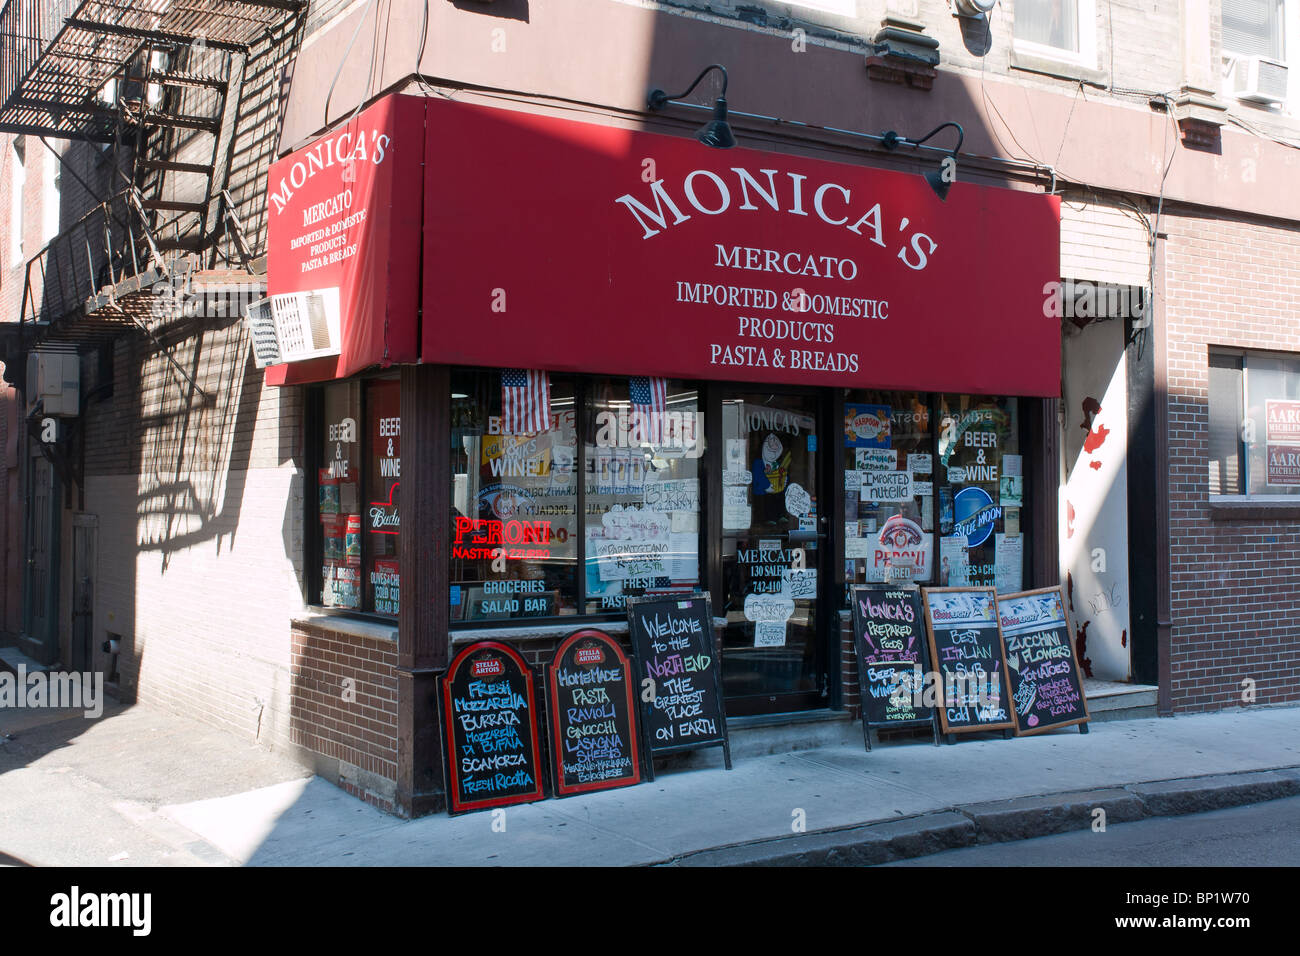 North End Storefront, Boston, Massachusetts - Stock Image